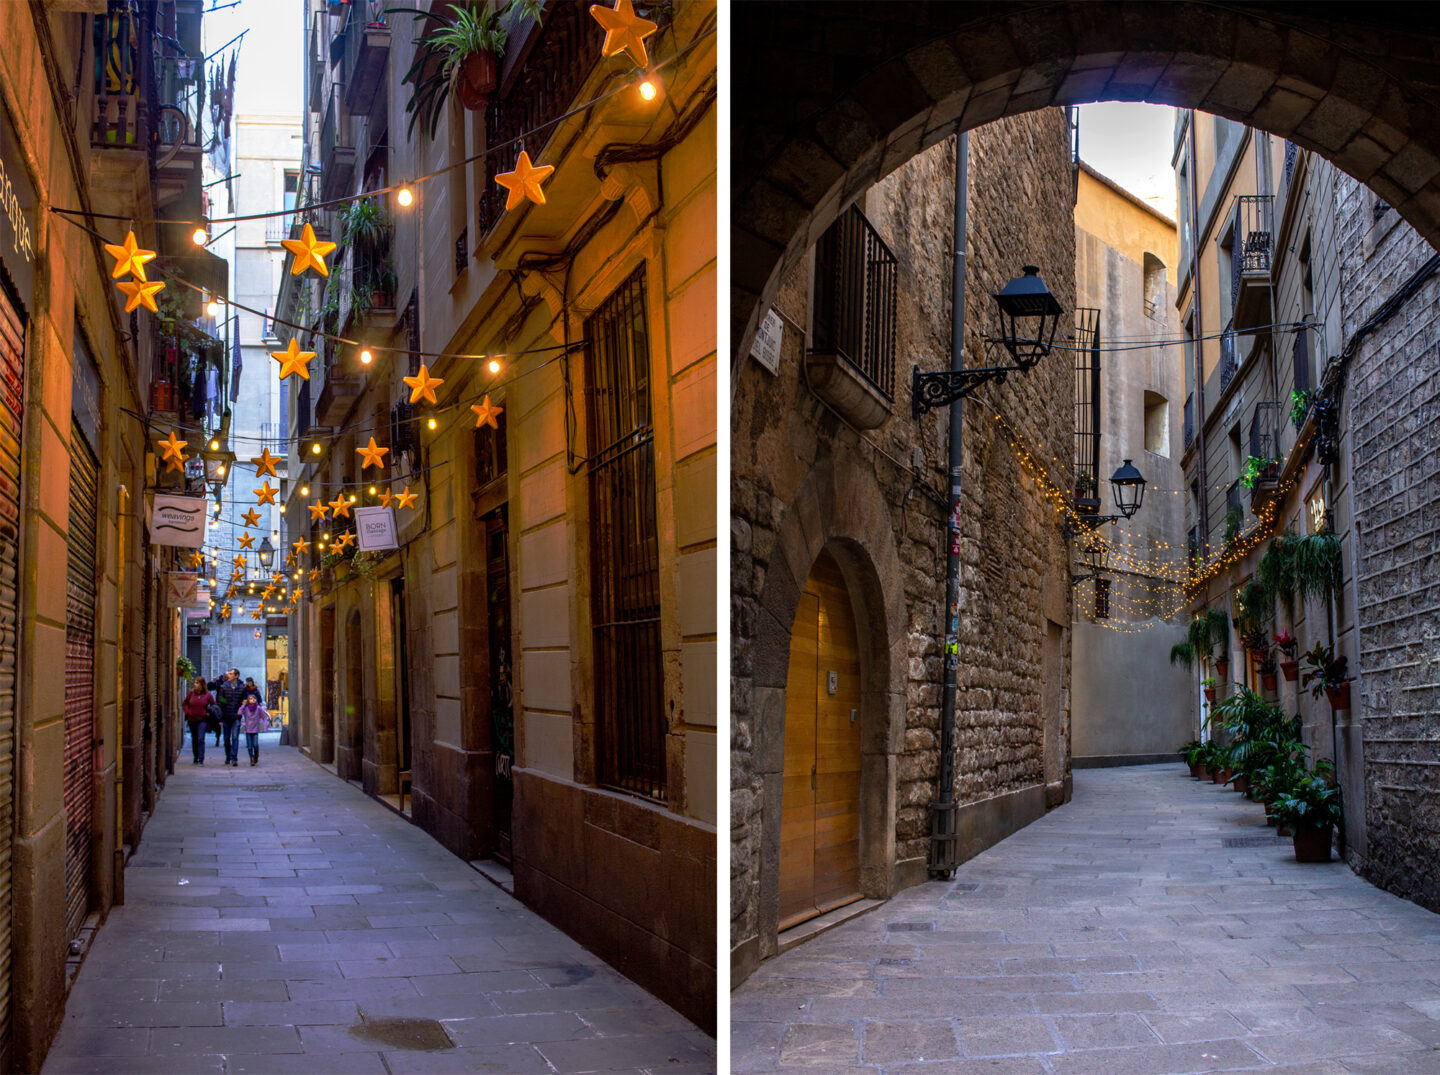 Narrow streets with fairy lights